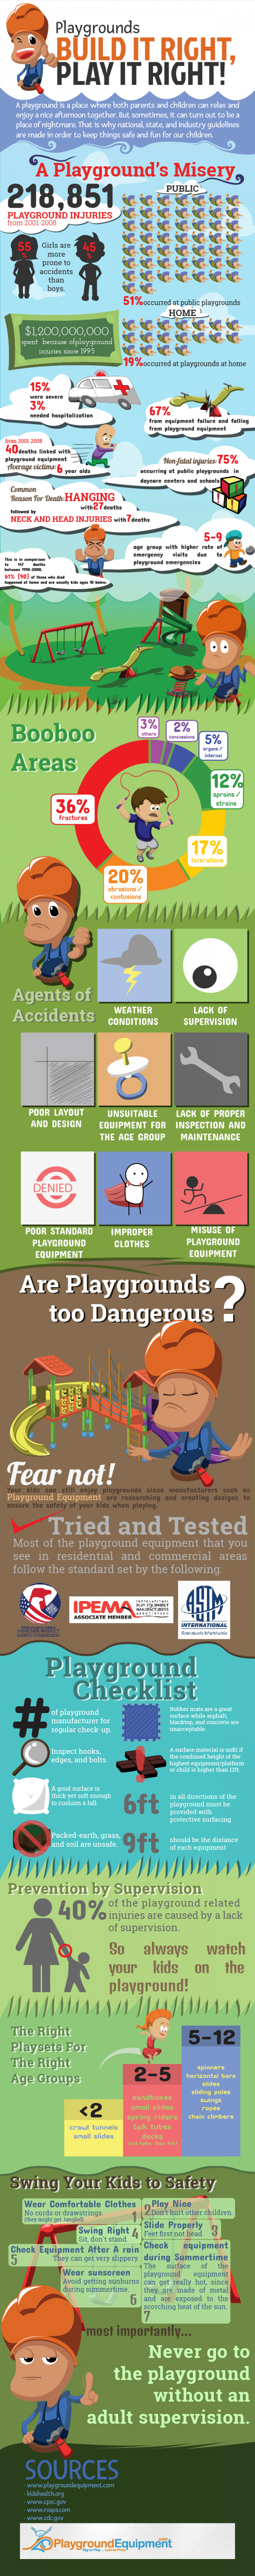 Build It Right, Play It Right! Infographic